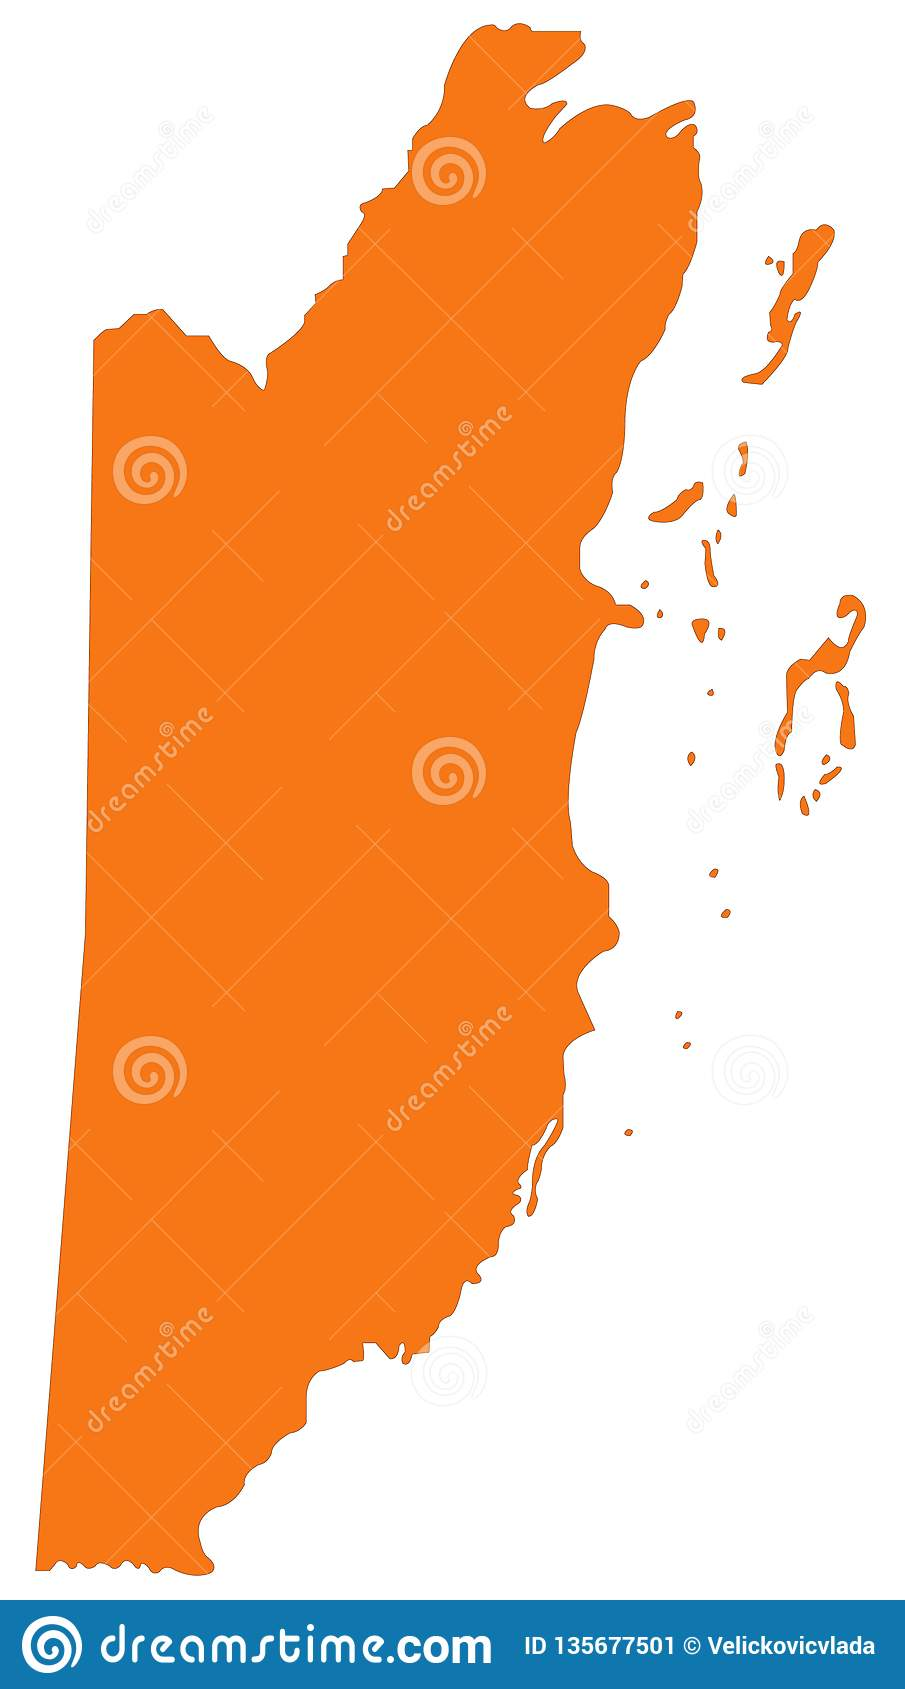 Belize Map - Country In Central America Stock Vector - Illustration on map of grenada, map of caribbean central america, map of gambia, map of mongolia, map of central america states, map of honduras central america, map showing belize, map of united state of america, map of bhutan, map of south america, map of mauritius, large map of central america, map of roatan central america, map guatemala central america, belize south america, map of algeria, world map of mexico and central america, map of north and central america, mayan ruins central america, map of zambia,